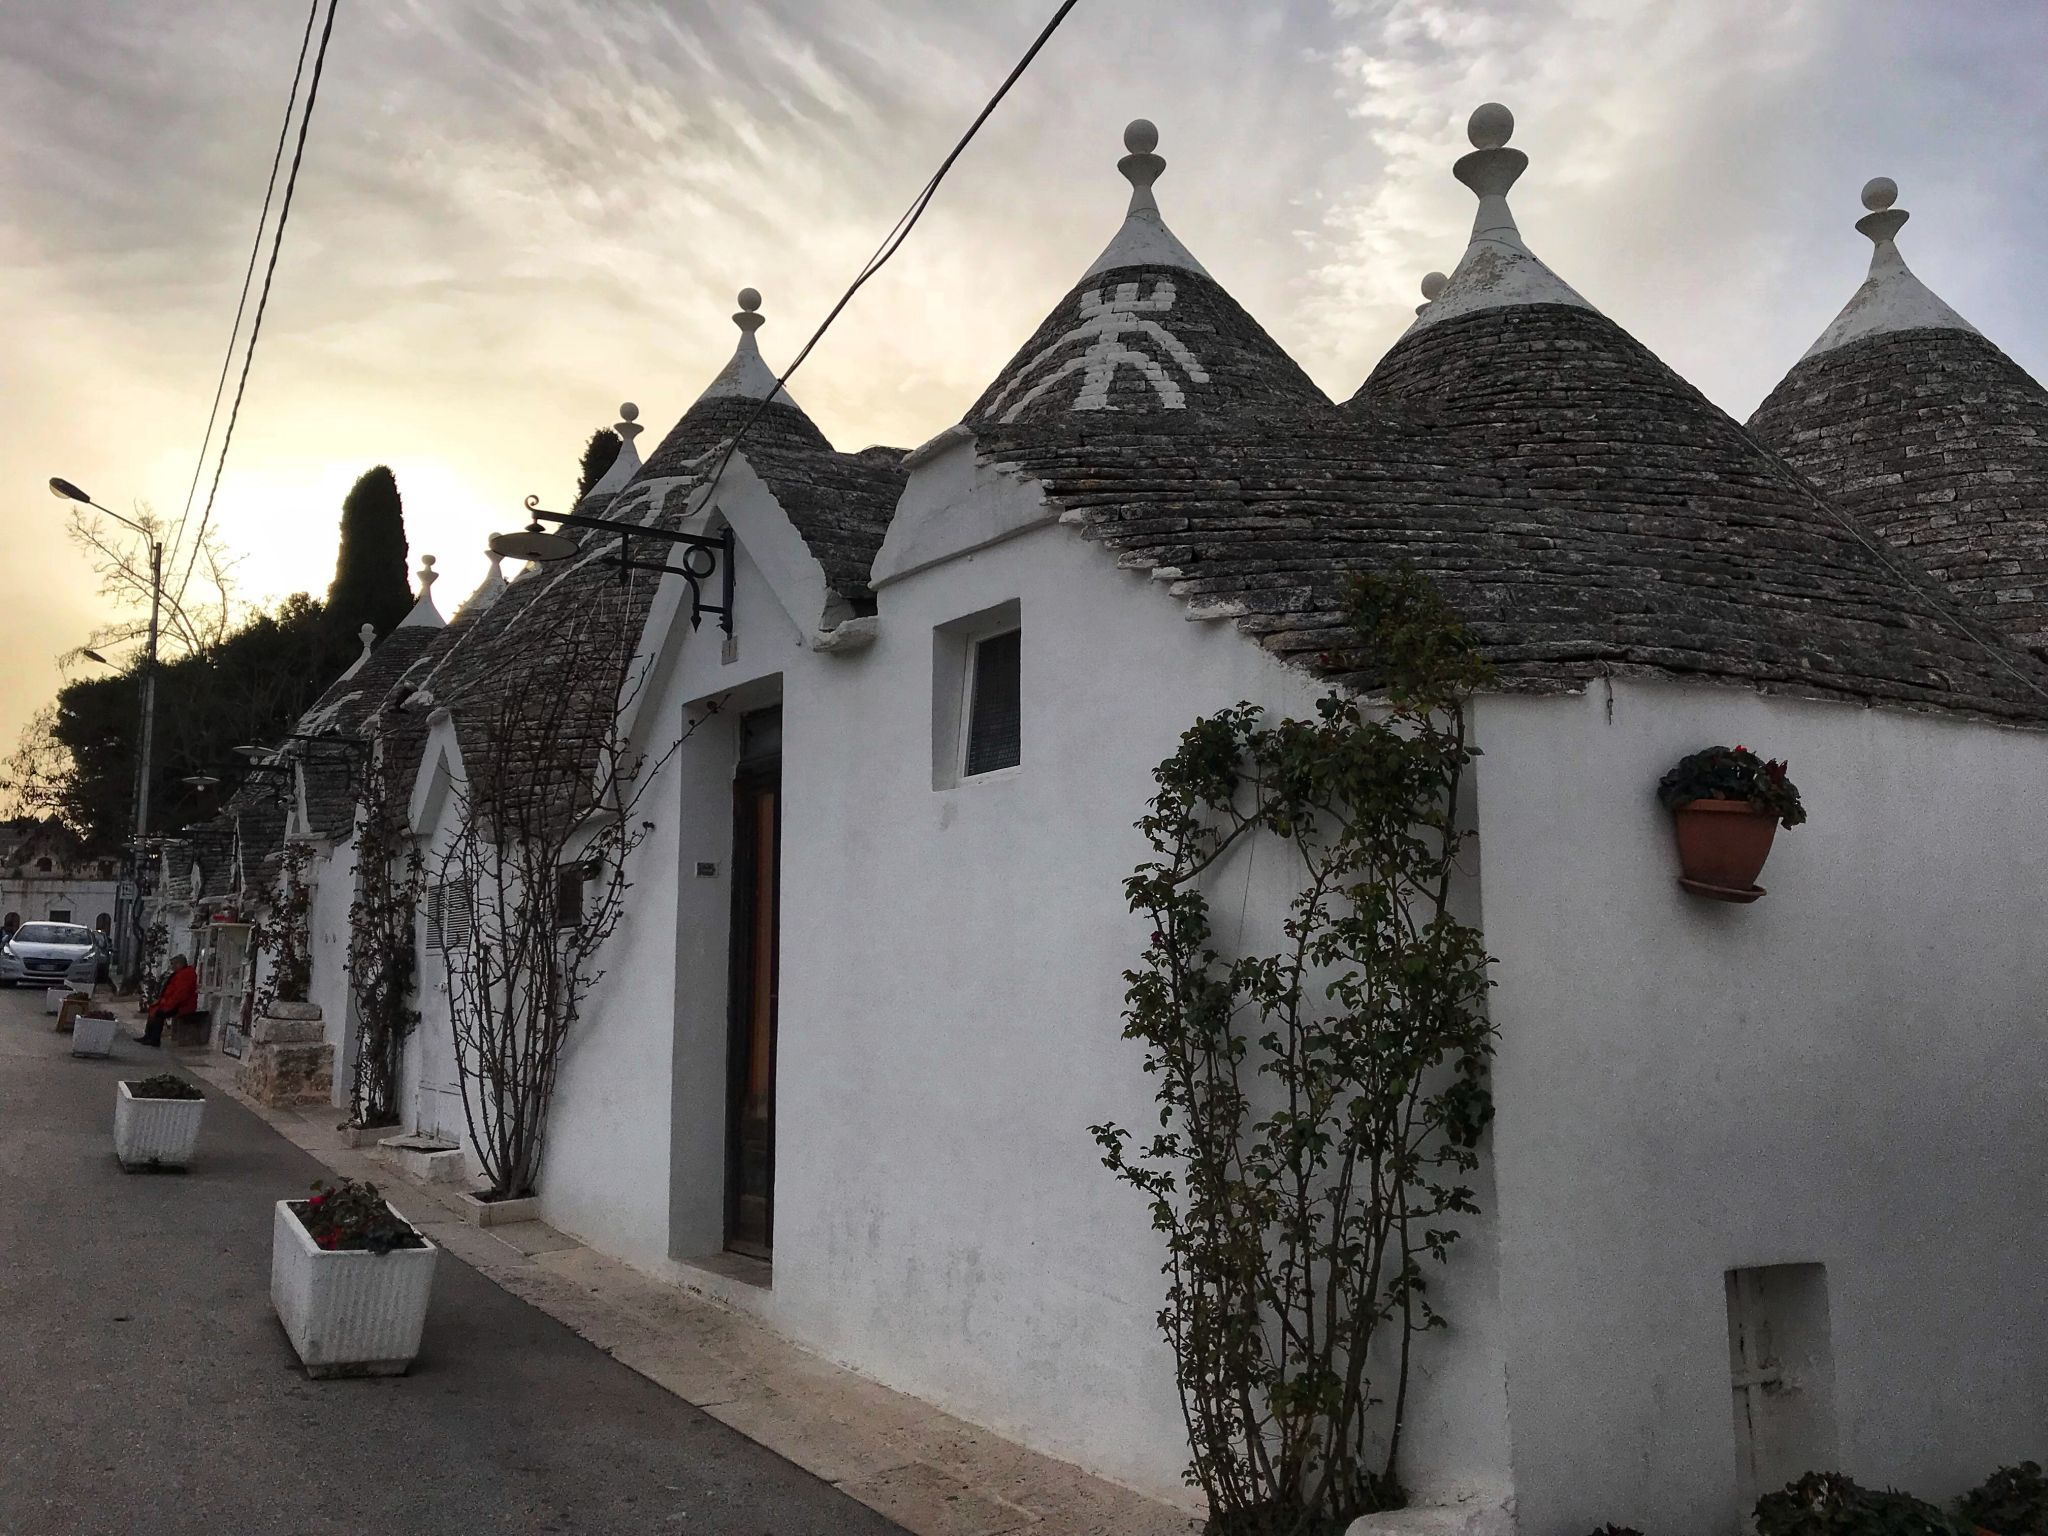 Sunset setting over the trulli houses in Alberobello